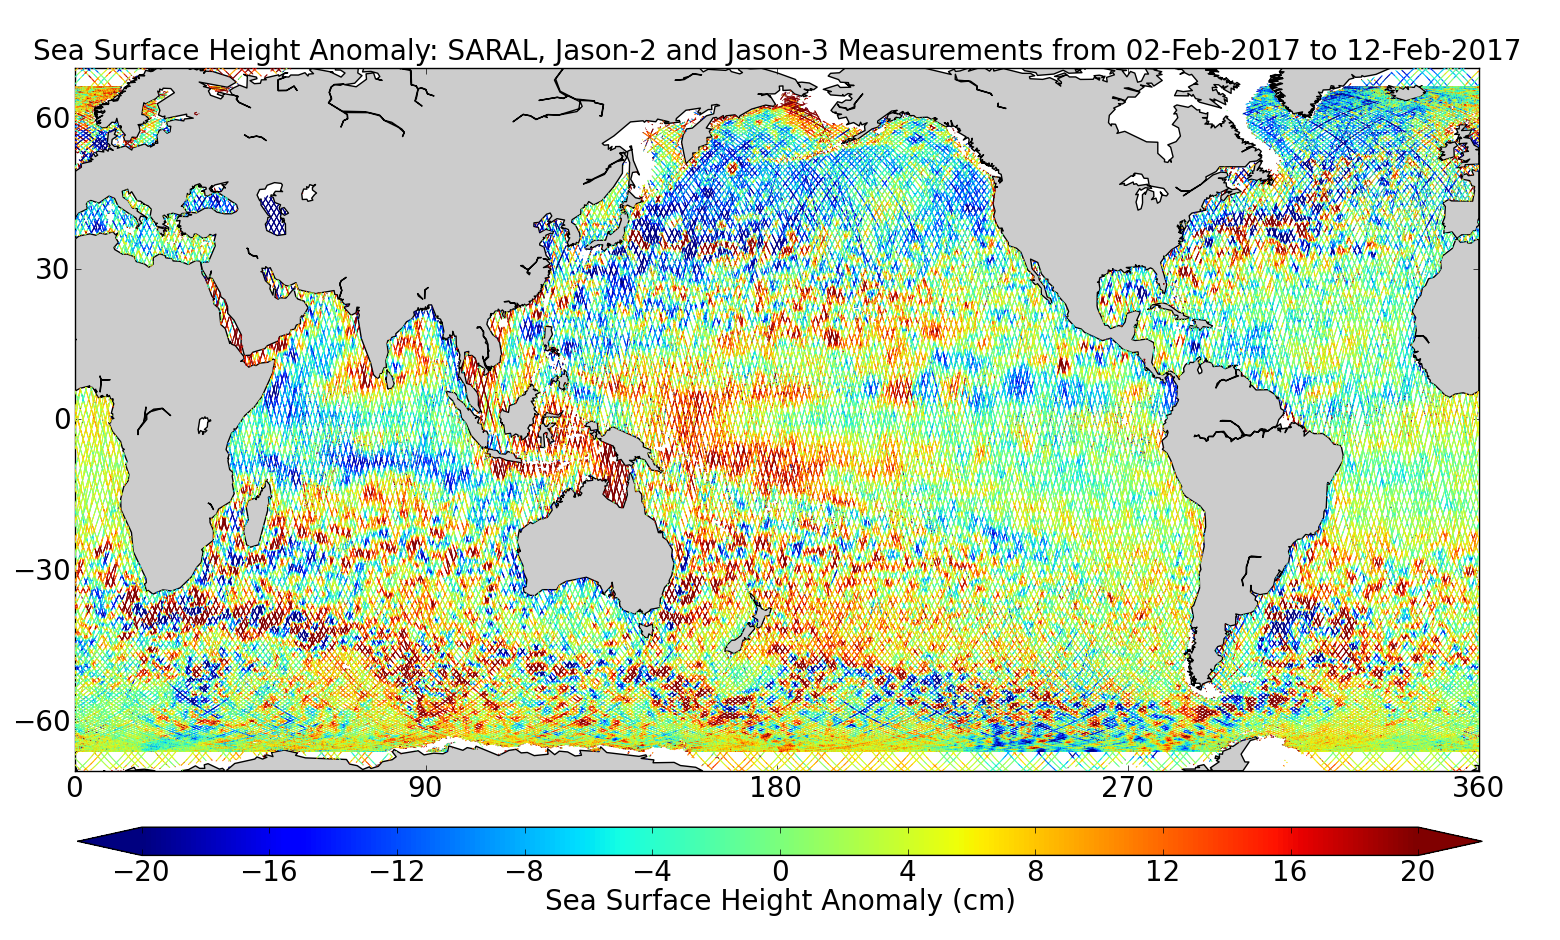 Sea Surface Height Anomaly: SARAL, Jason-2 and Jason-3 Measurements from 02-Feb-2017 to 12-Feb-2017